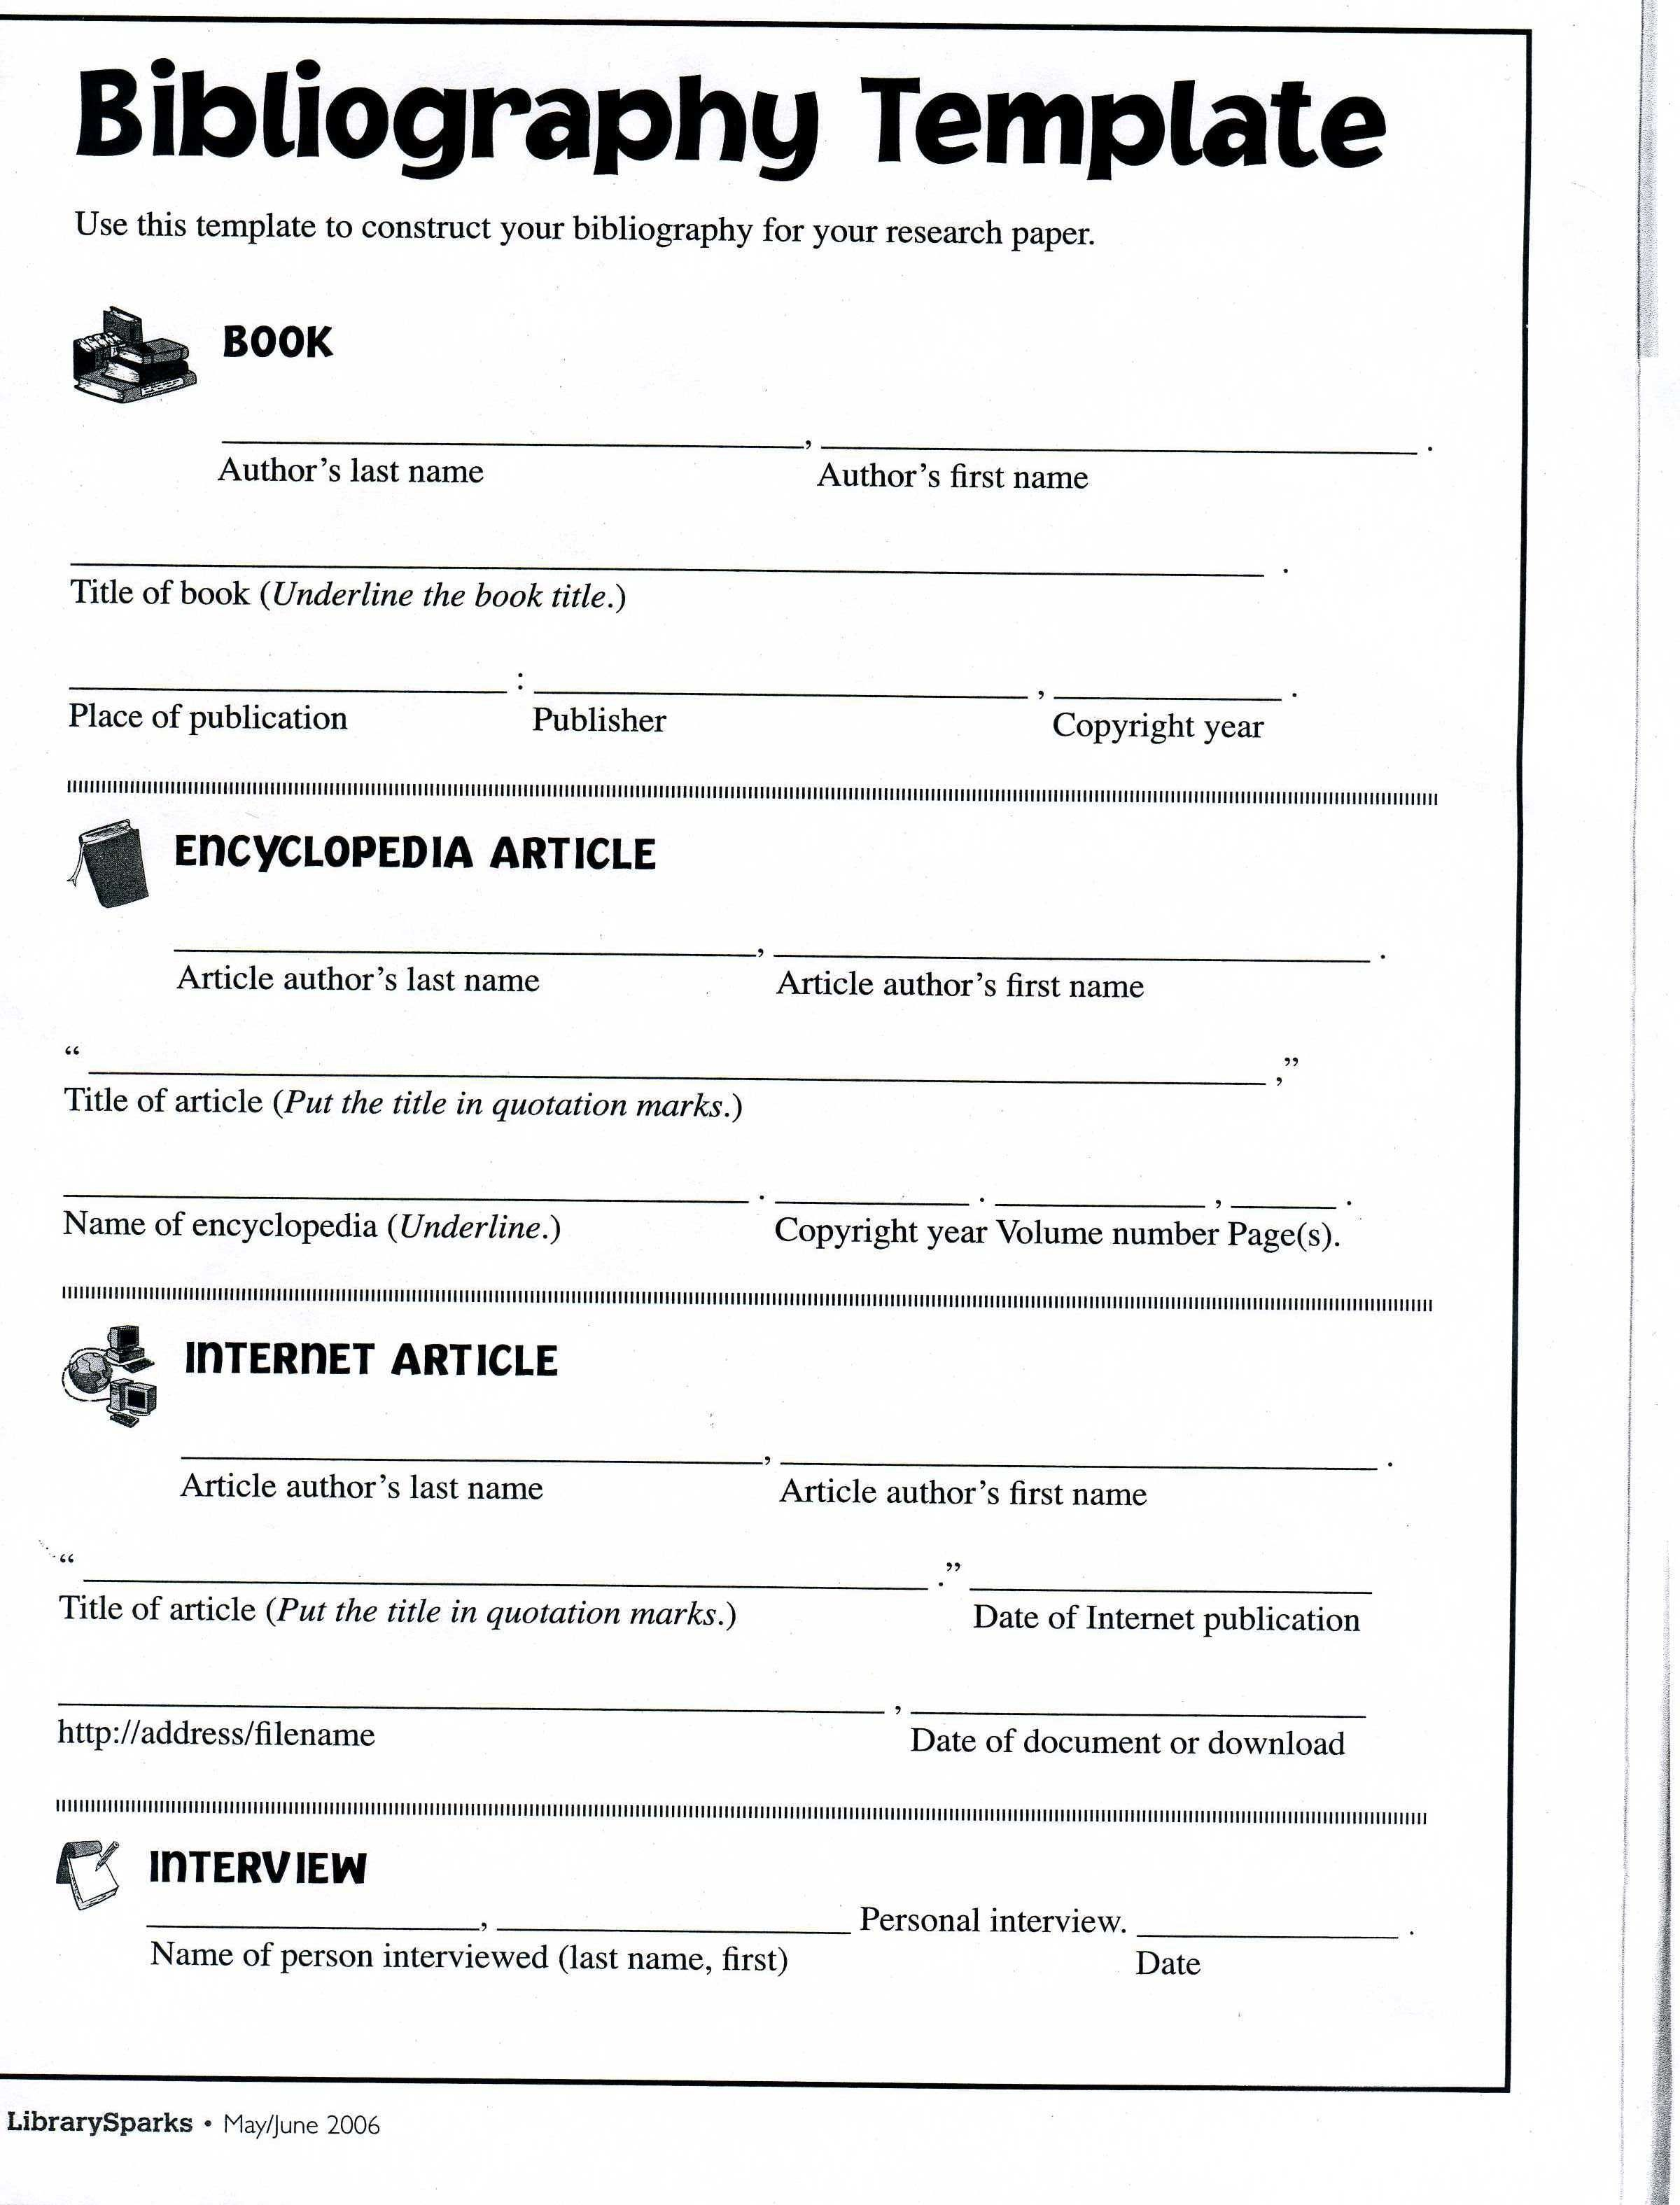 Bibliography Template Mla Middle School